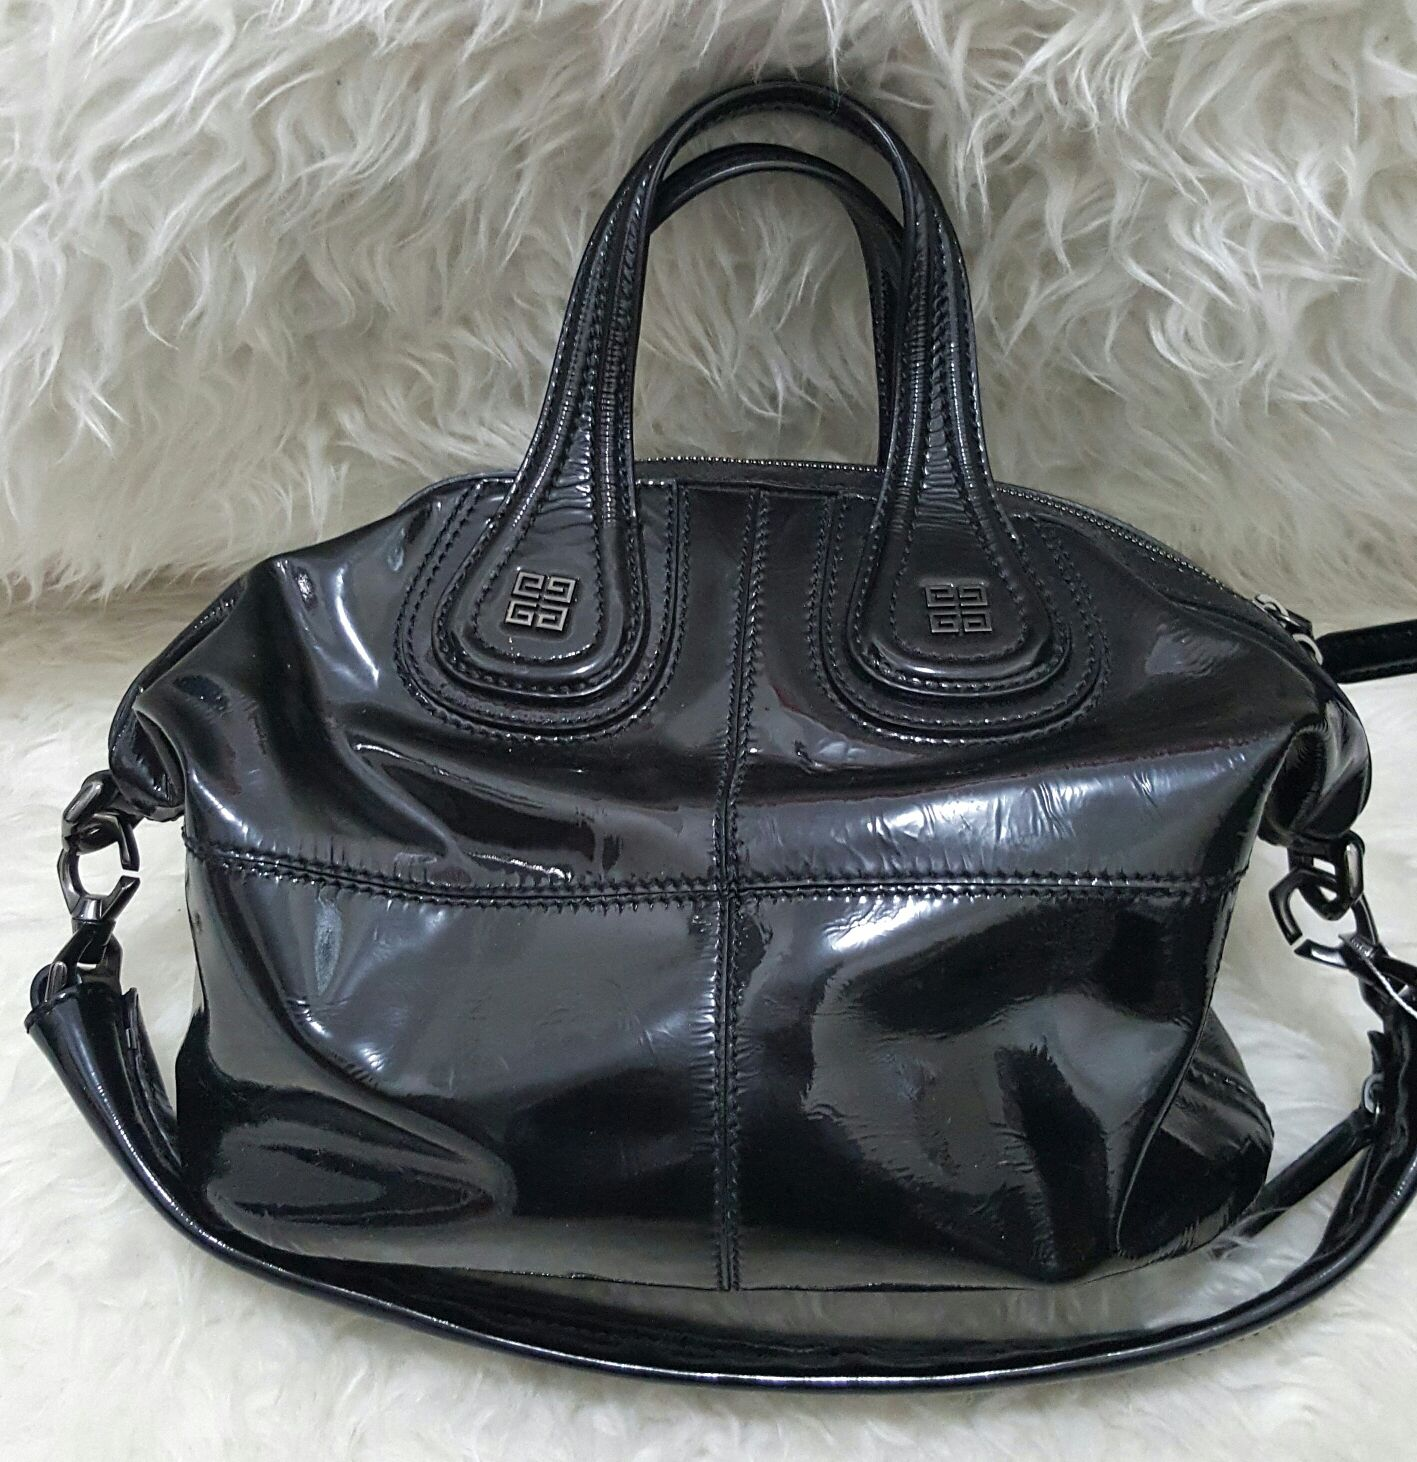 givenchy_d